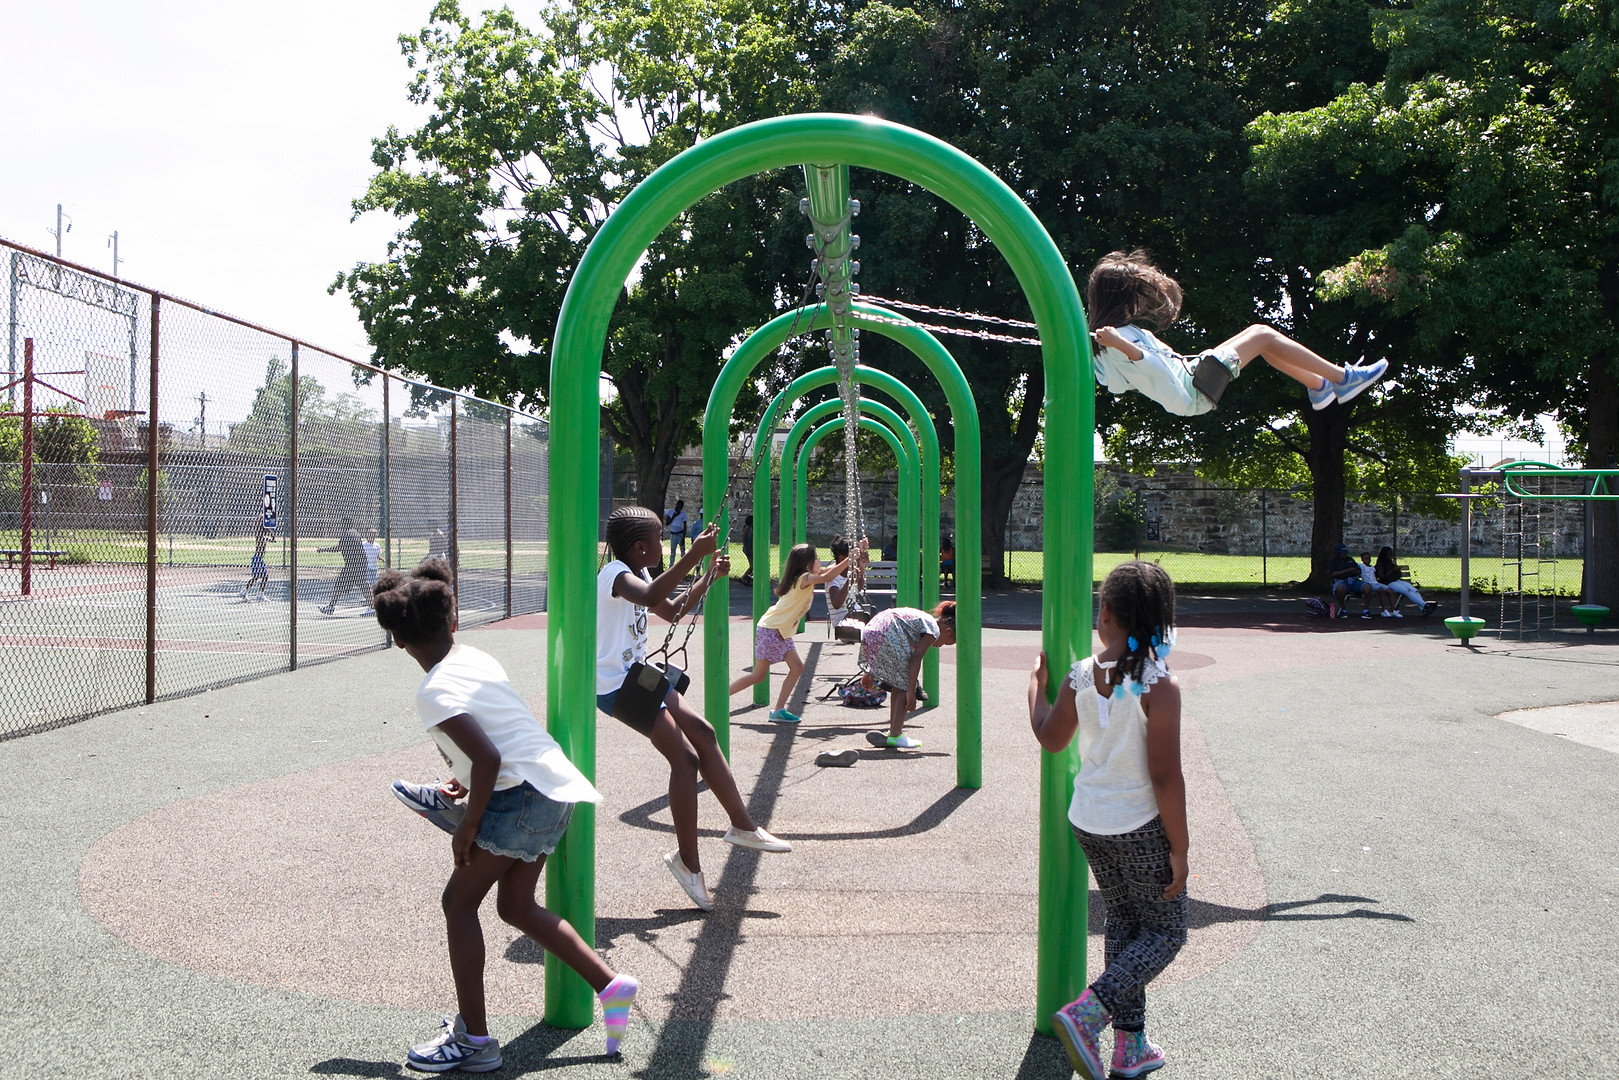 Kids from R.W. Brown Summer Camp play on the swings at Dendy Recreation Center at 10th and Oxford Streets in North Philadelphia on the morning of Friday, June 29, 2018. Maggie Loesch / WHYY